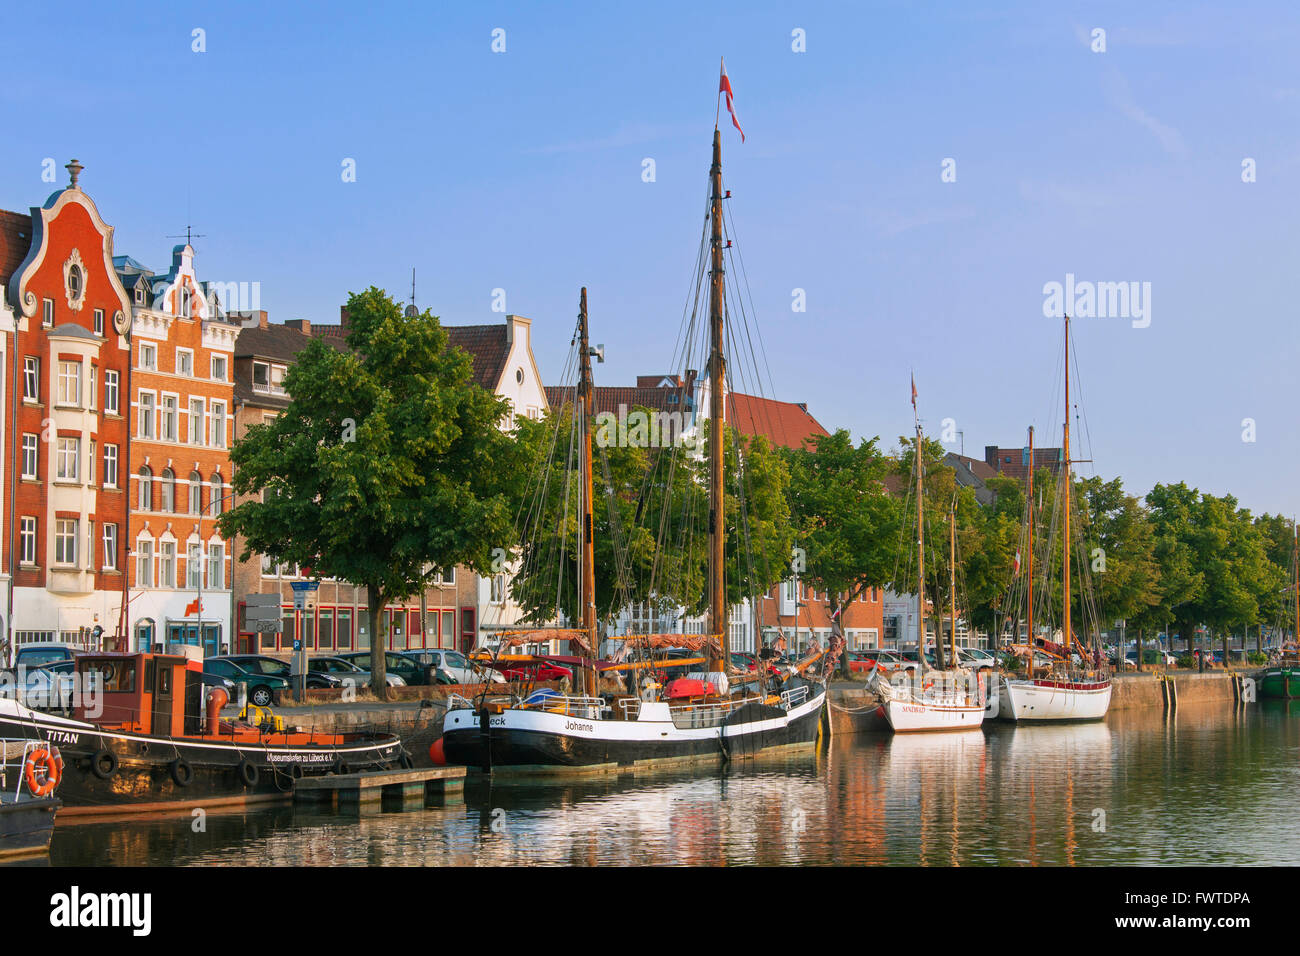 Museums harbour with traditional sailing ships berthed at the Untertrave in the Hanseatic town Lübeck, Germany - Stock Image